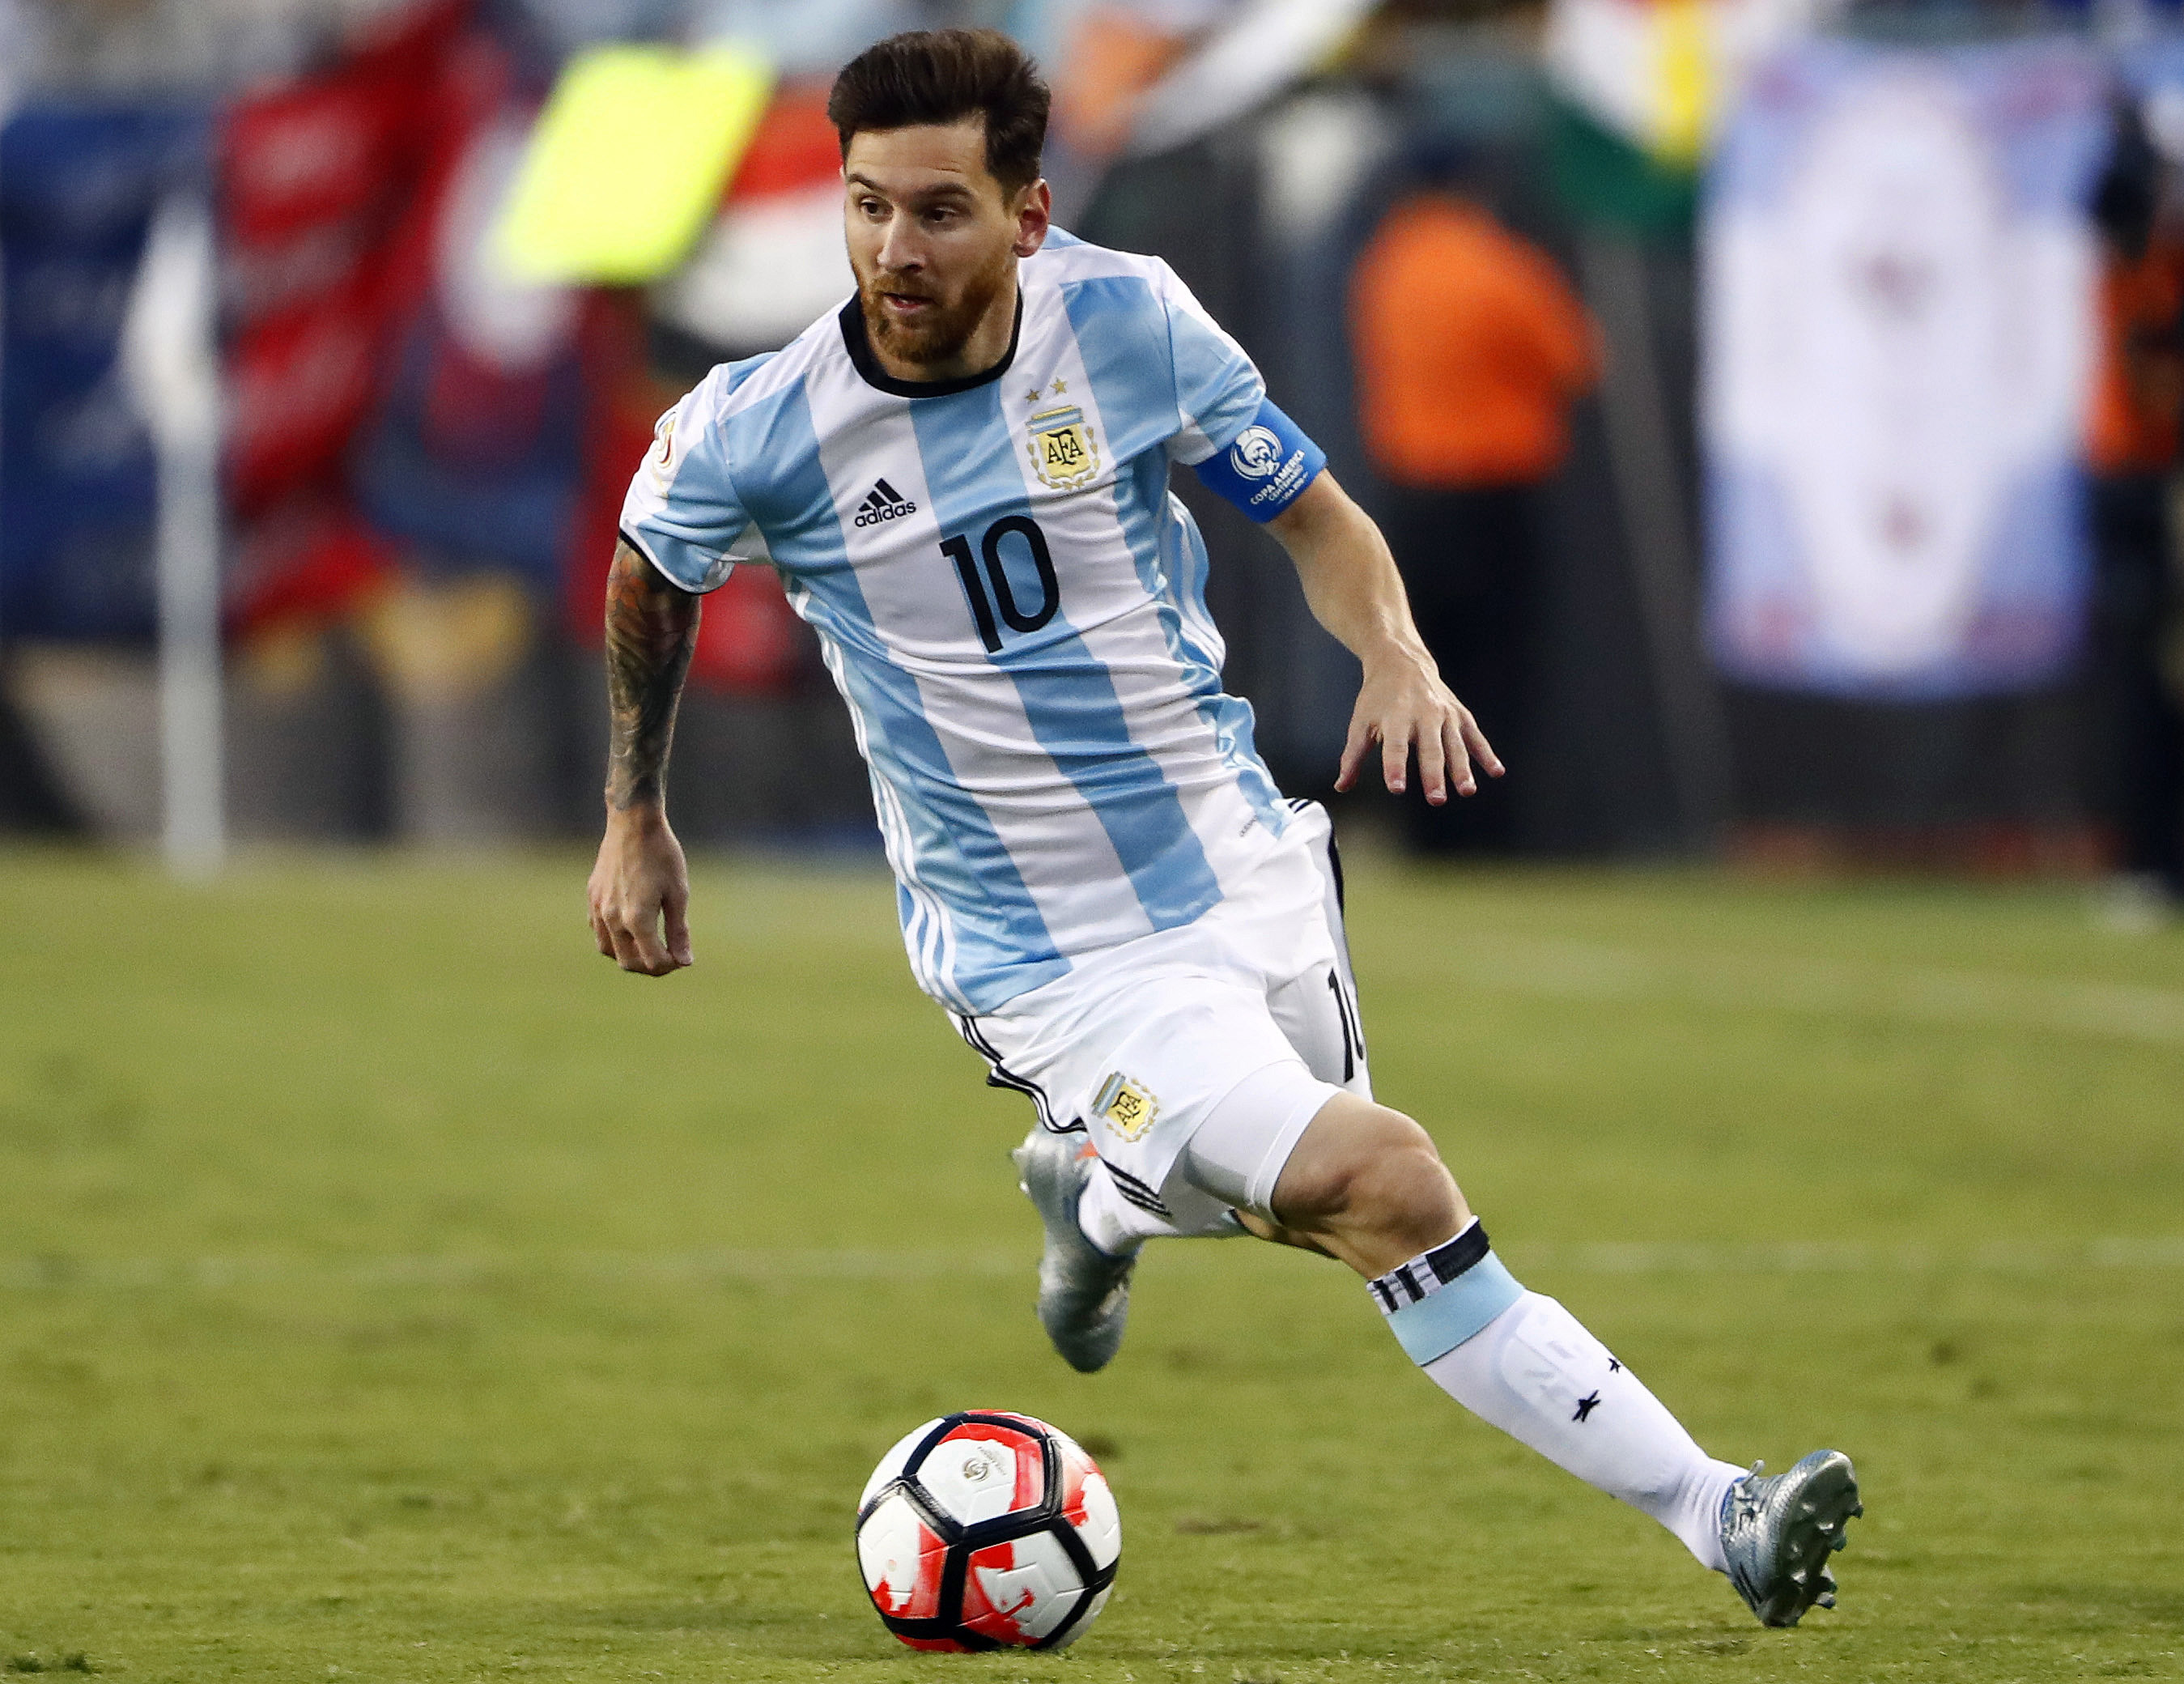 Lionel Messi In Argentina Football Team Fifa World Cup 2018 Hd